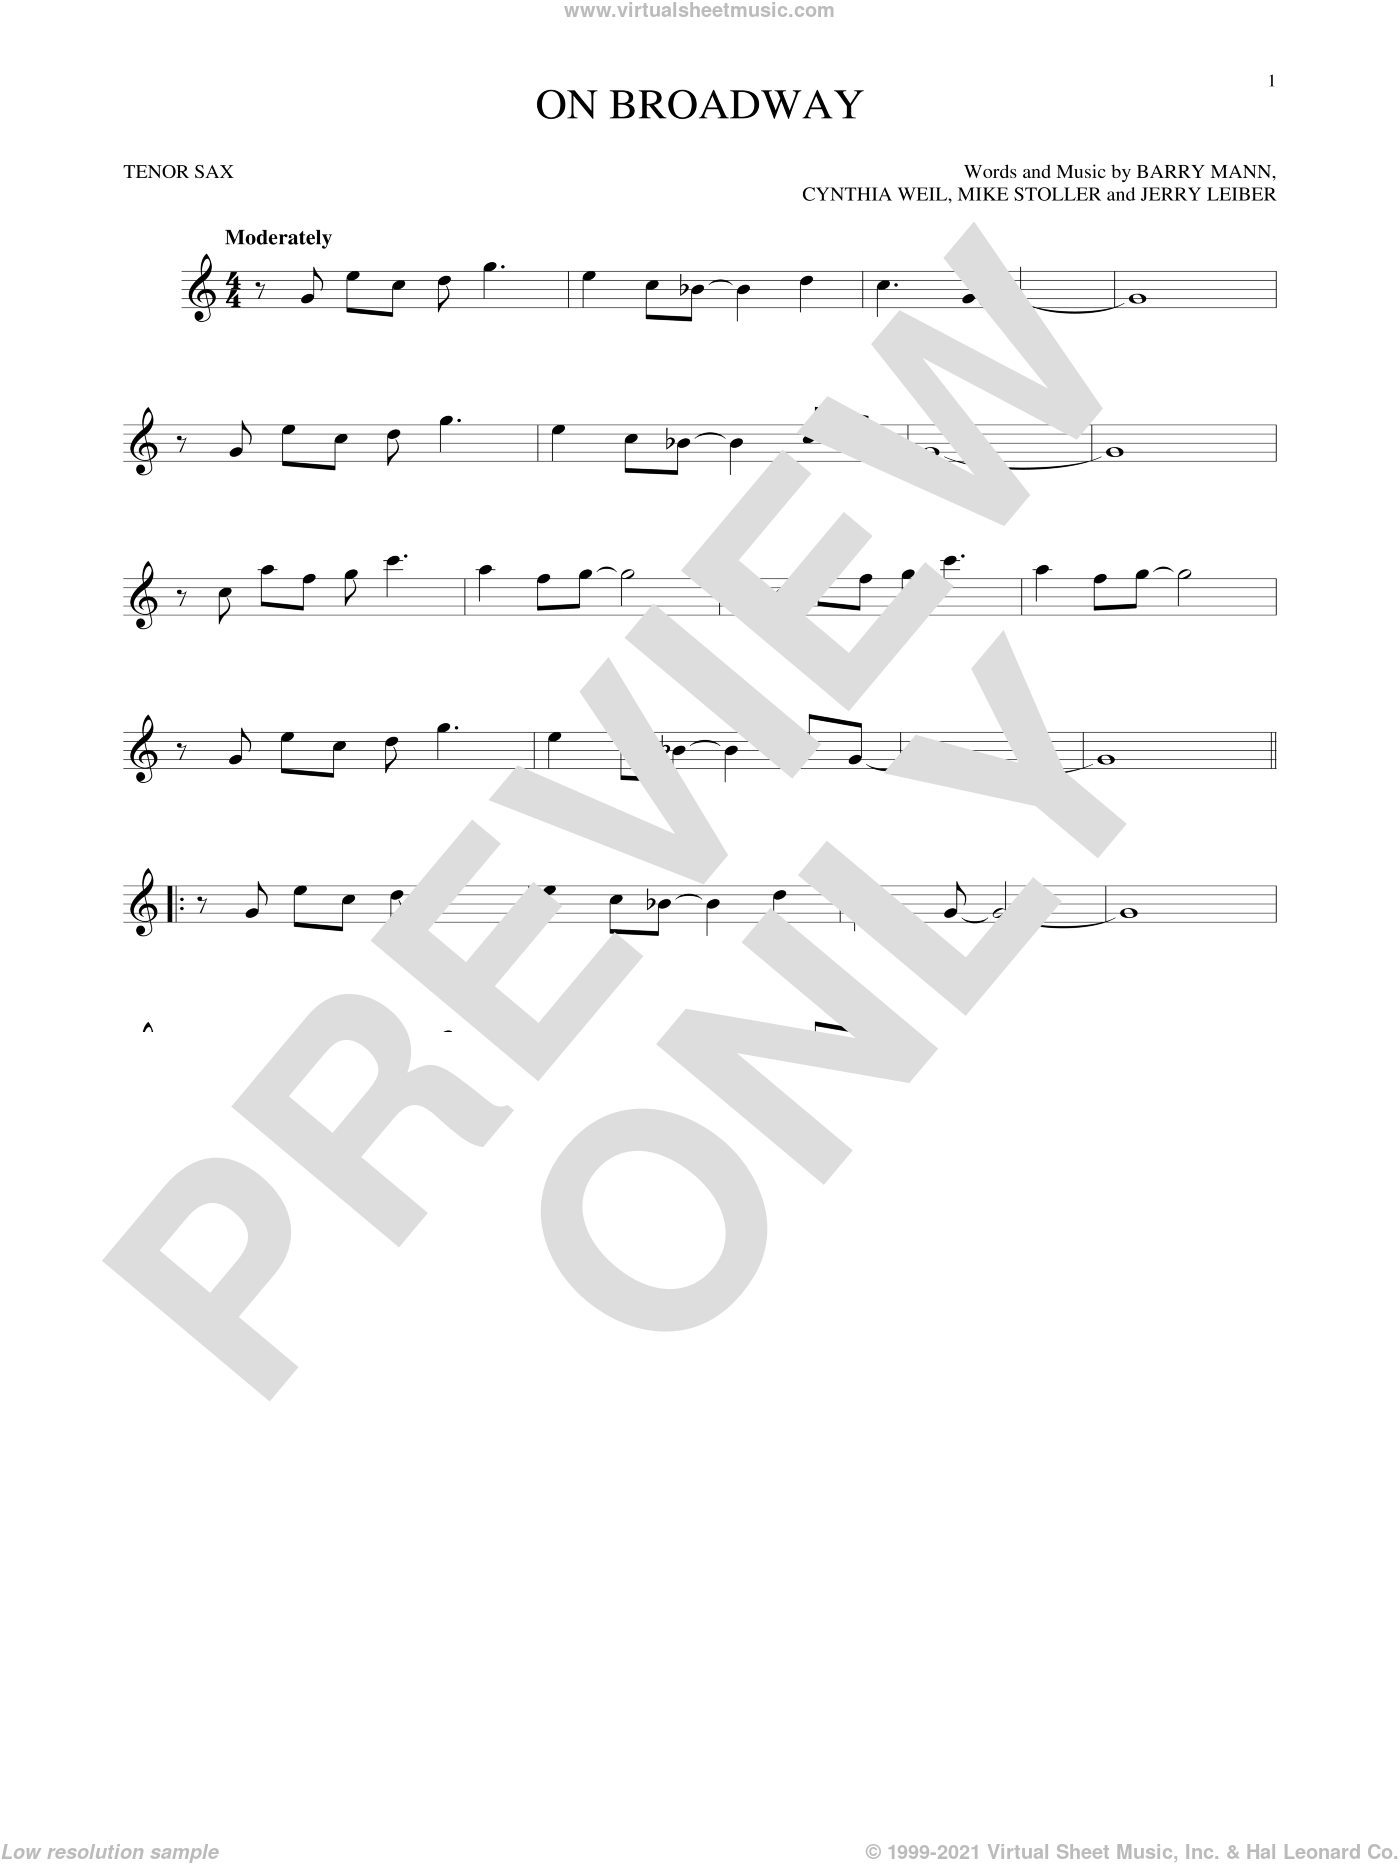 On Broadway sheet music for tenor saxophone solo by George Benson, The Drifters, Barry Mann, Cynthia Weil, Jerry Leiber and Mike Stoller, intermediate